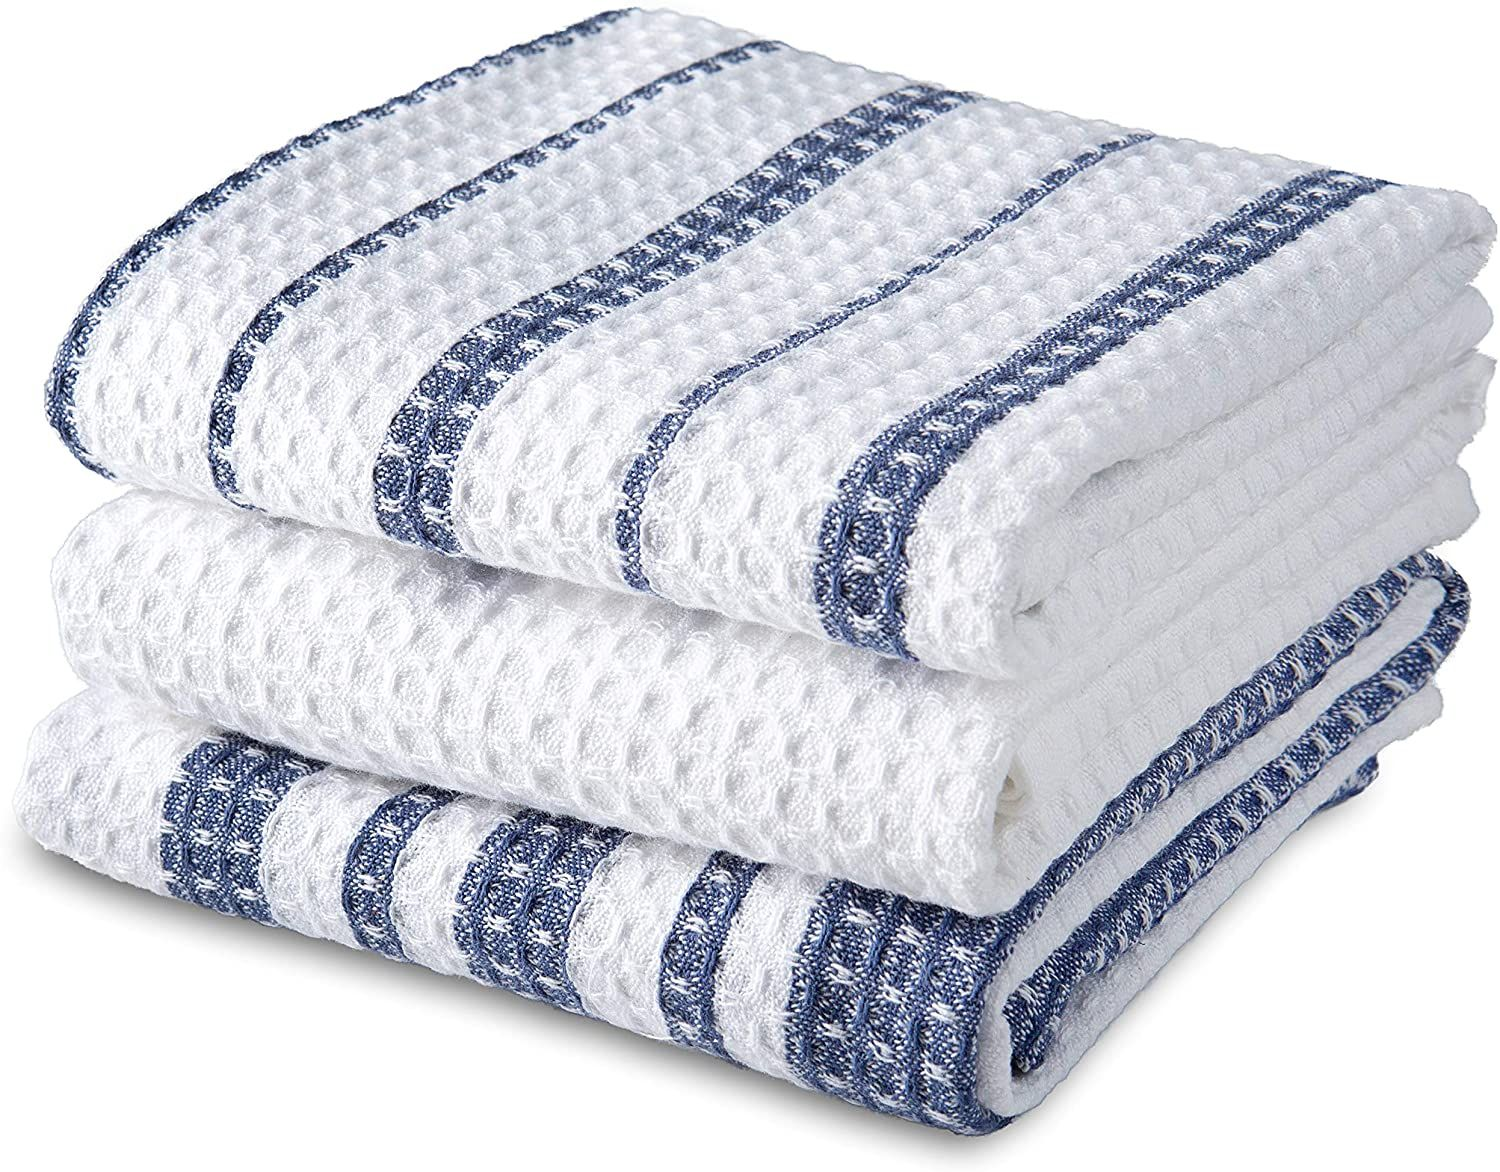 Photo of Sticky Toffee Cotton Waffle Weave Kitchen Dish Towels, 3 Pack Kitchen Towels, 28 x 16 – Blue Stripe Waffle Weave